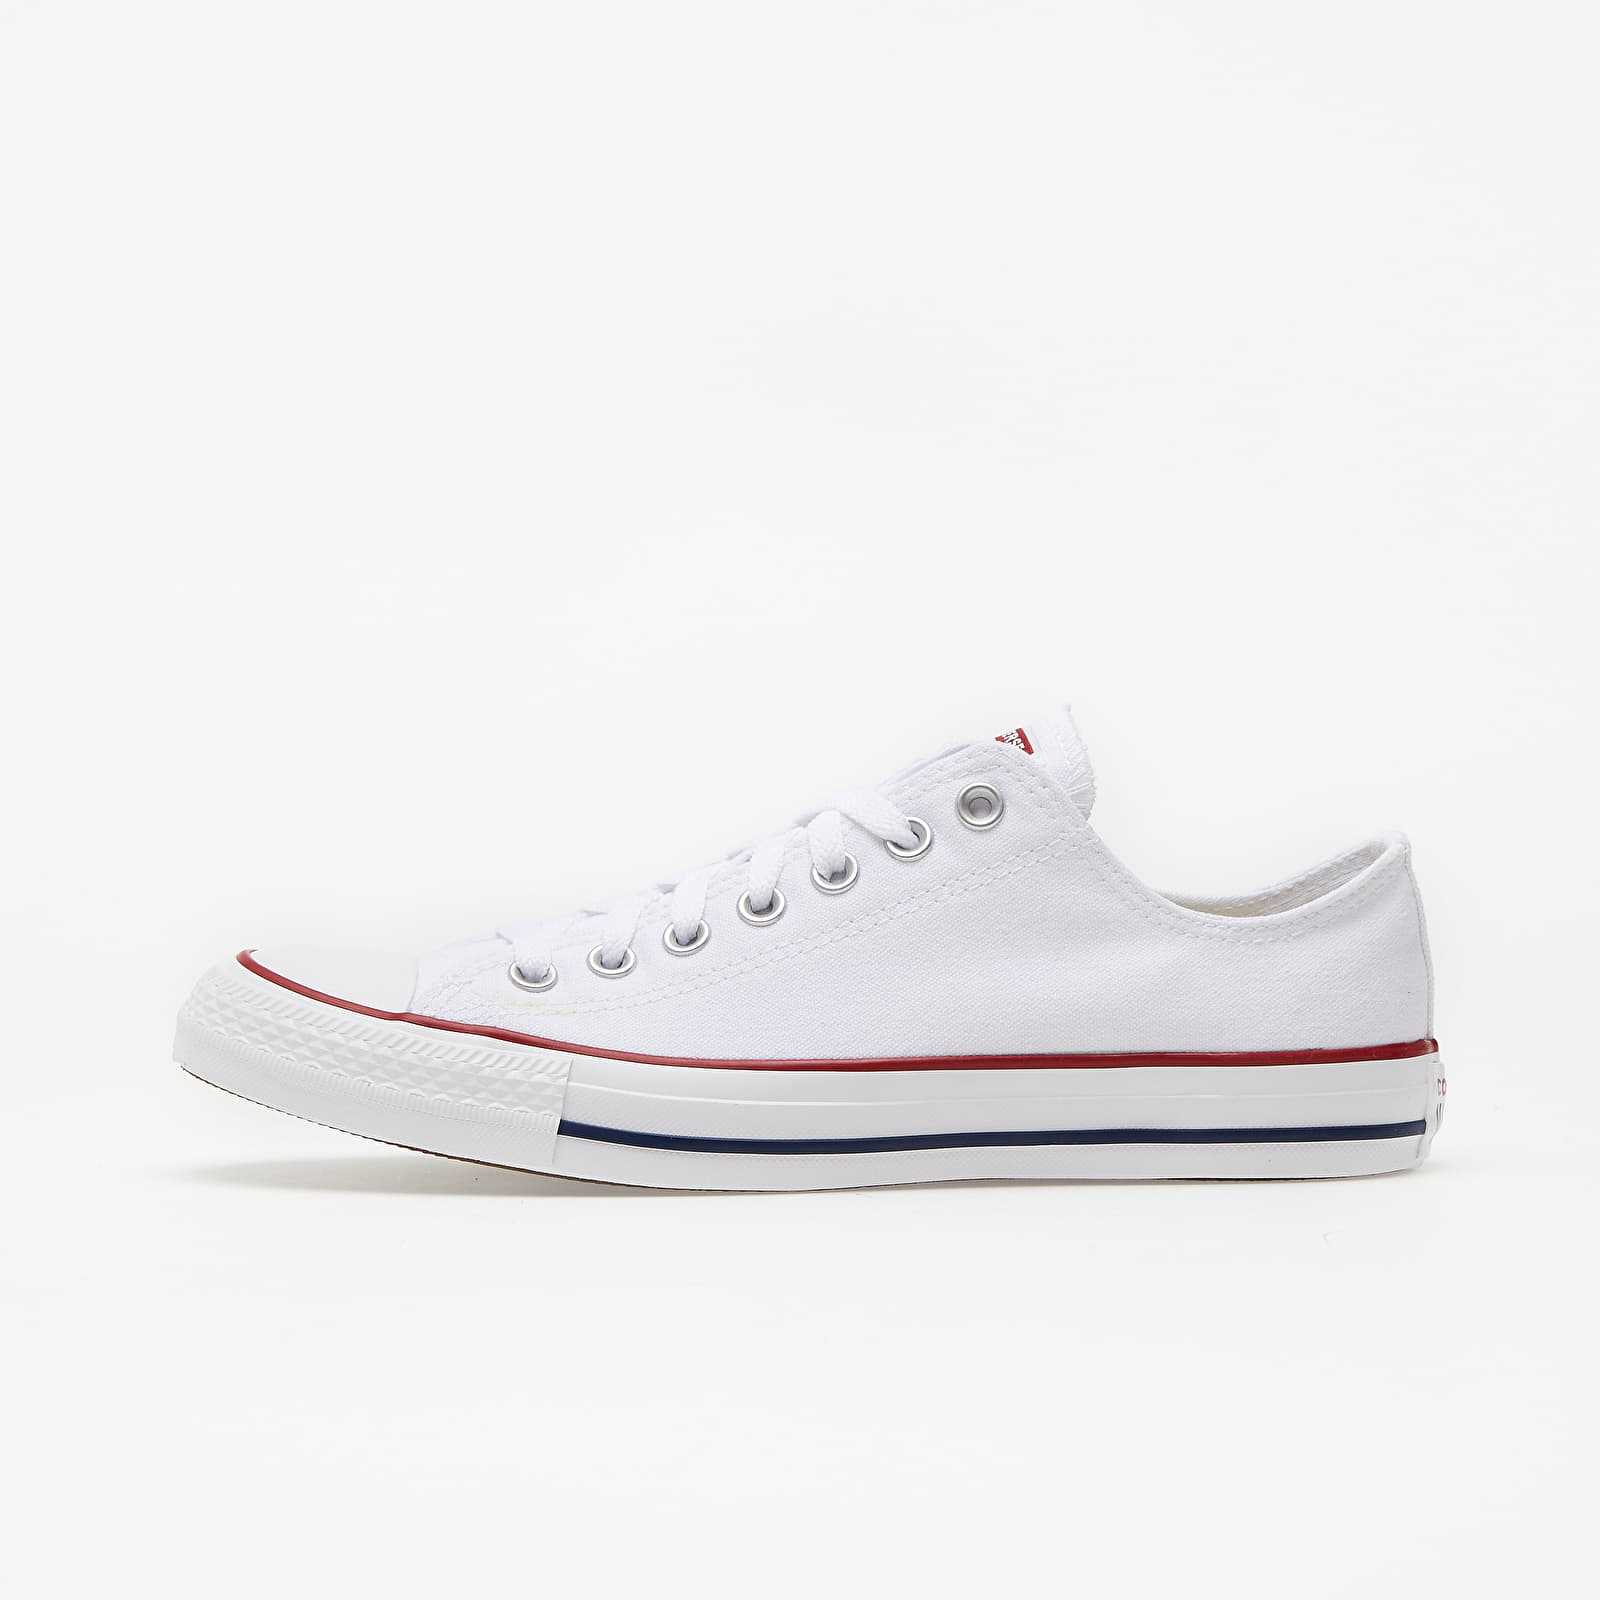 Men's shoes Converse Chuck Taylor All Star Ox Optic White